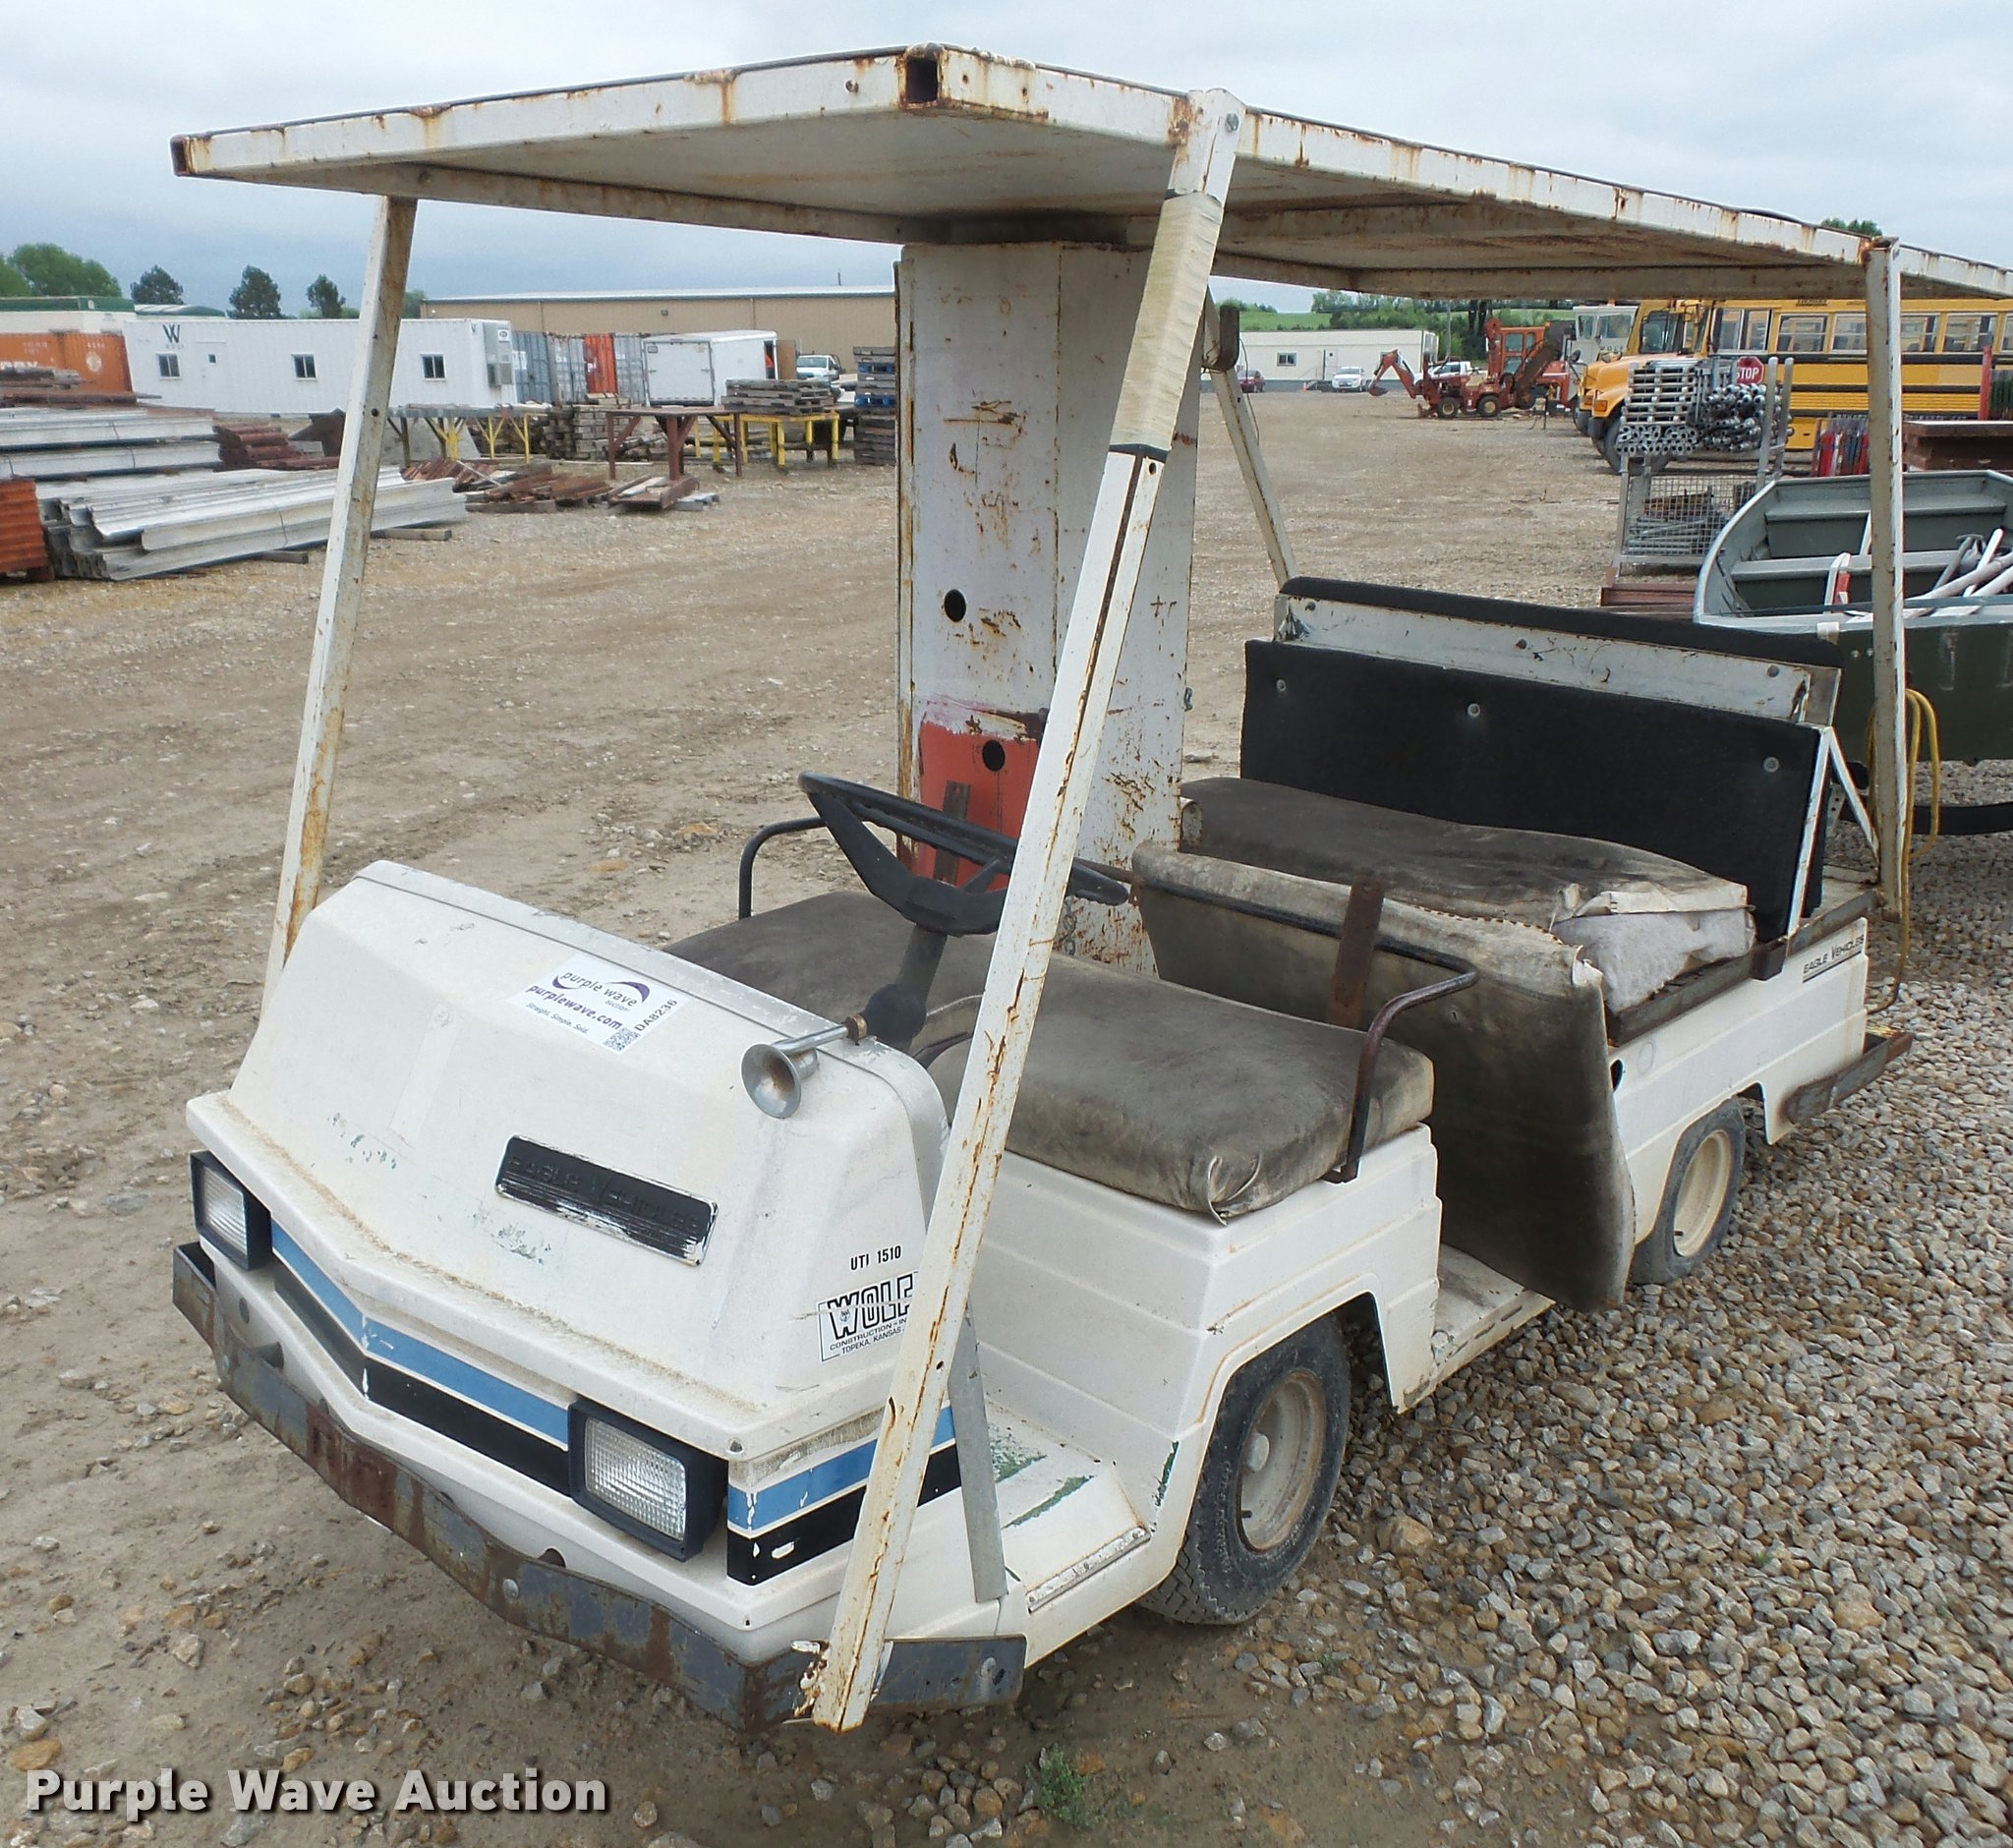 Pargo Golf Cart Gas Bass Taylor Dunn Antique Otis Wiring Diagram Item Da8236 Sold June 7 Vehicles And Eq Vintage